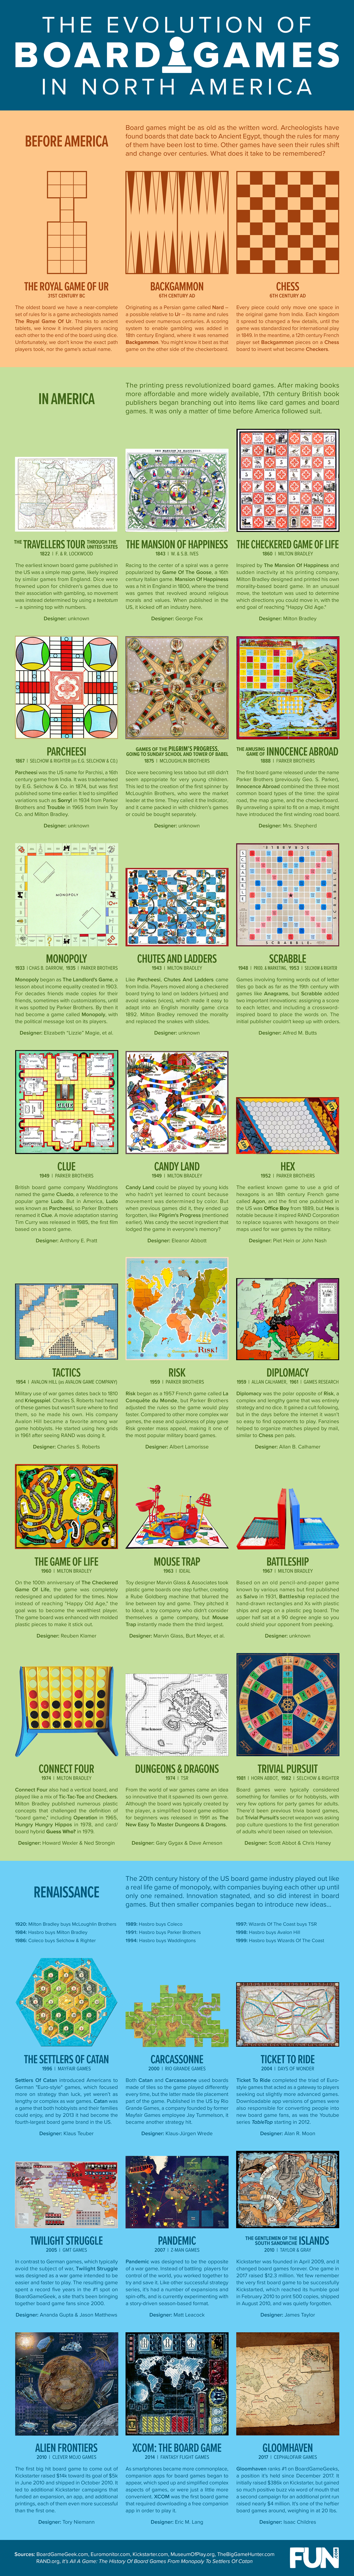 The Evolution of Board Games in North America [Infographic]